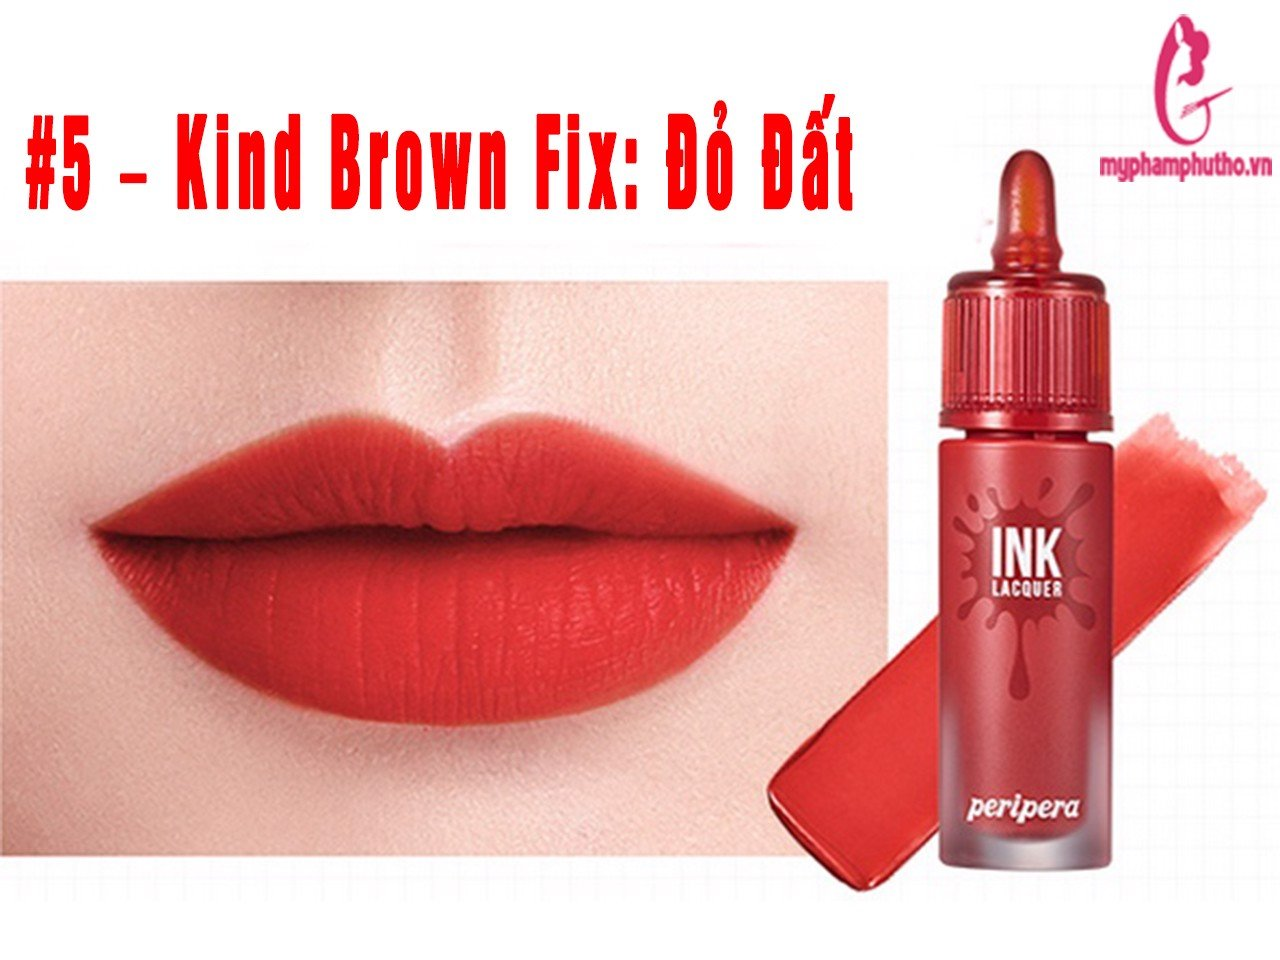 Son kem lì Peripera Ink Lacquer Lip Tint #5 – Kind Brown Fix: Đỏ đất